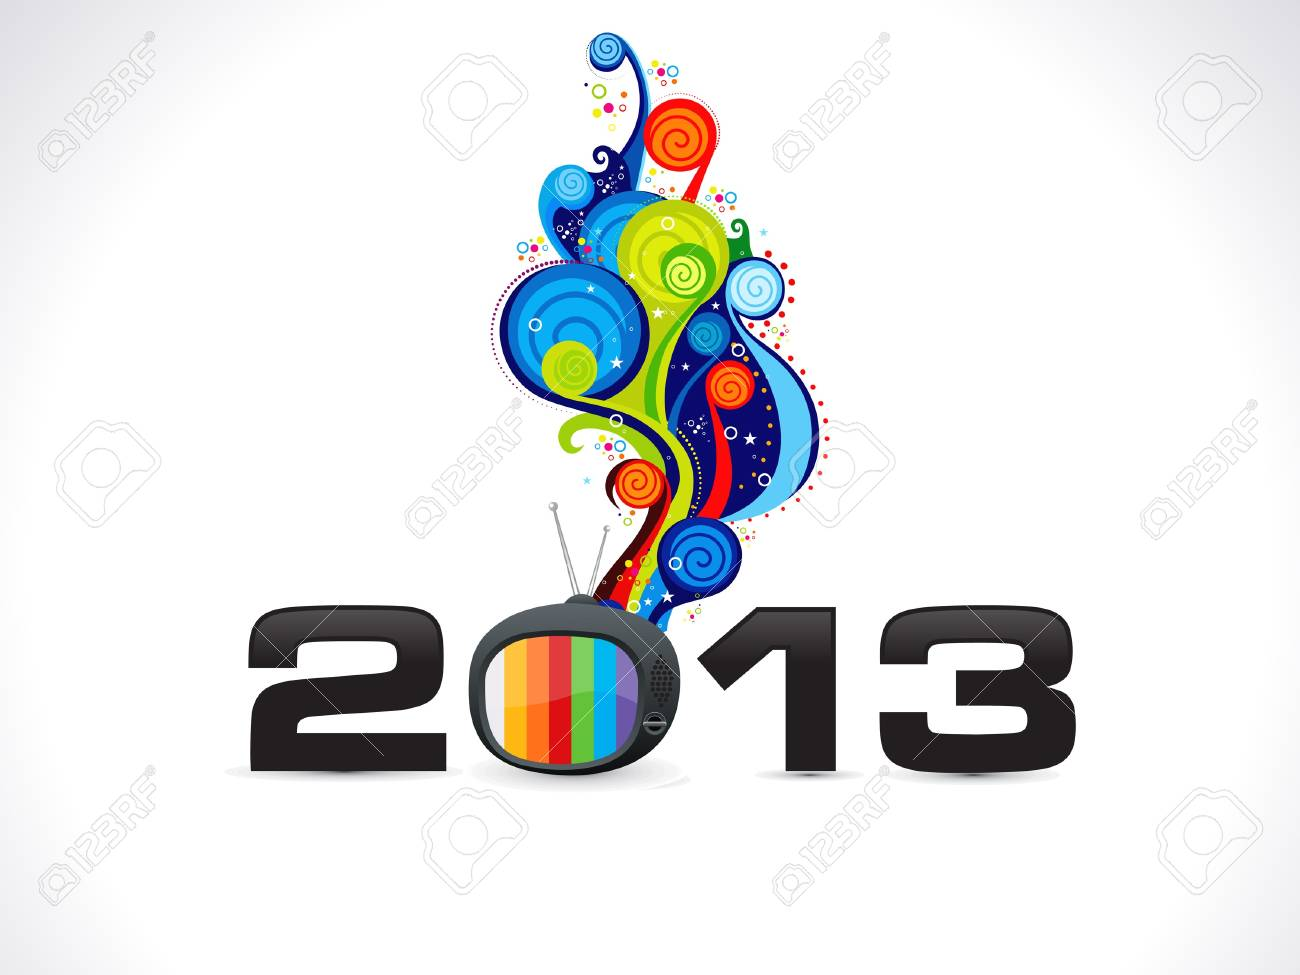 abstract new year wallpaper vector illustration Stock Vector - 15841935